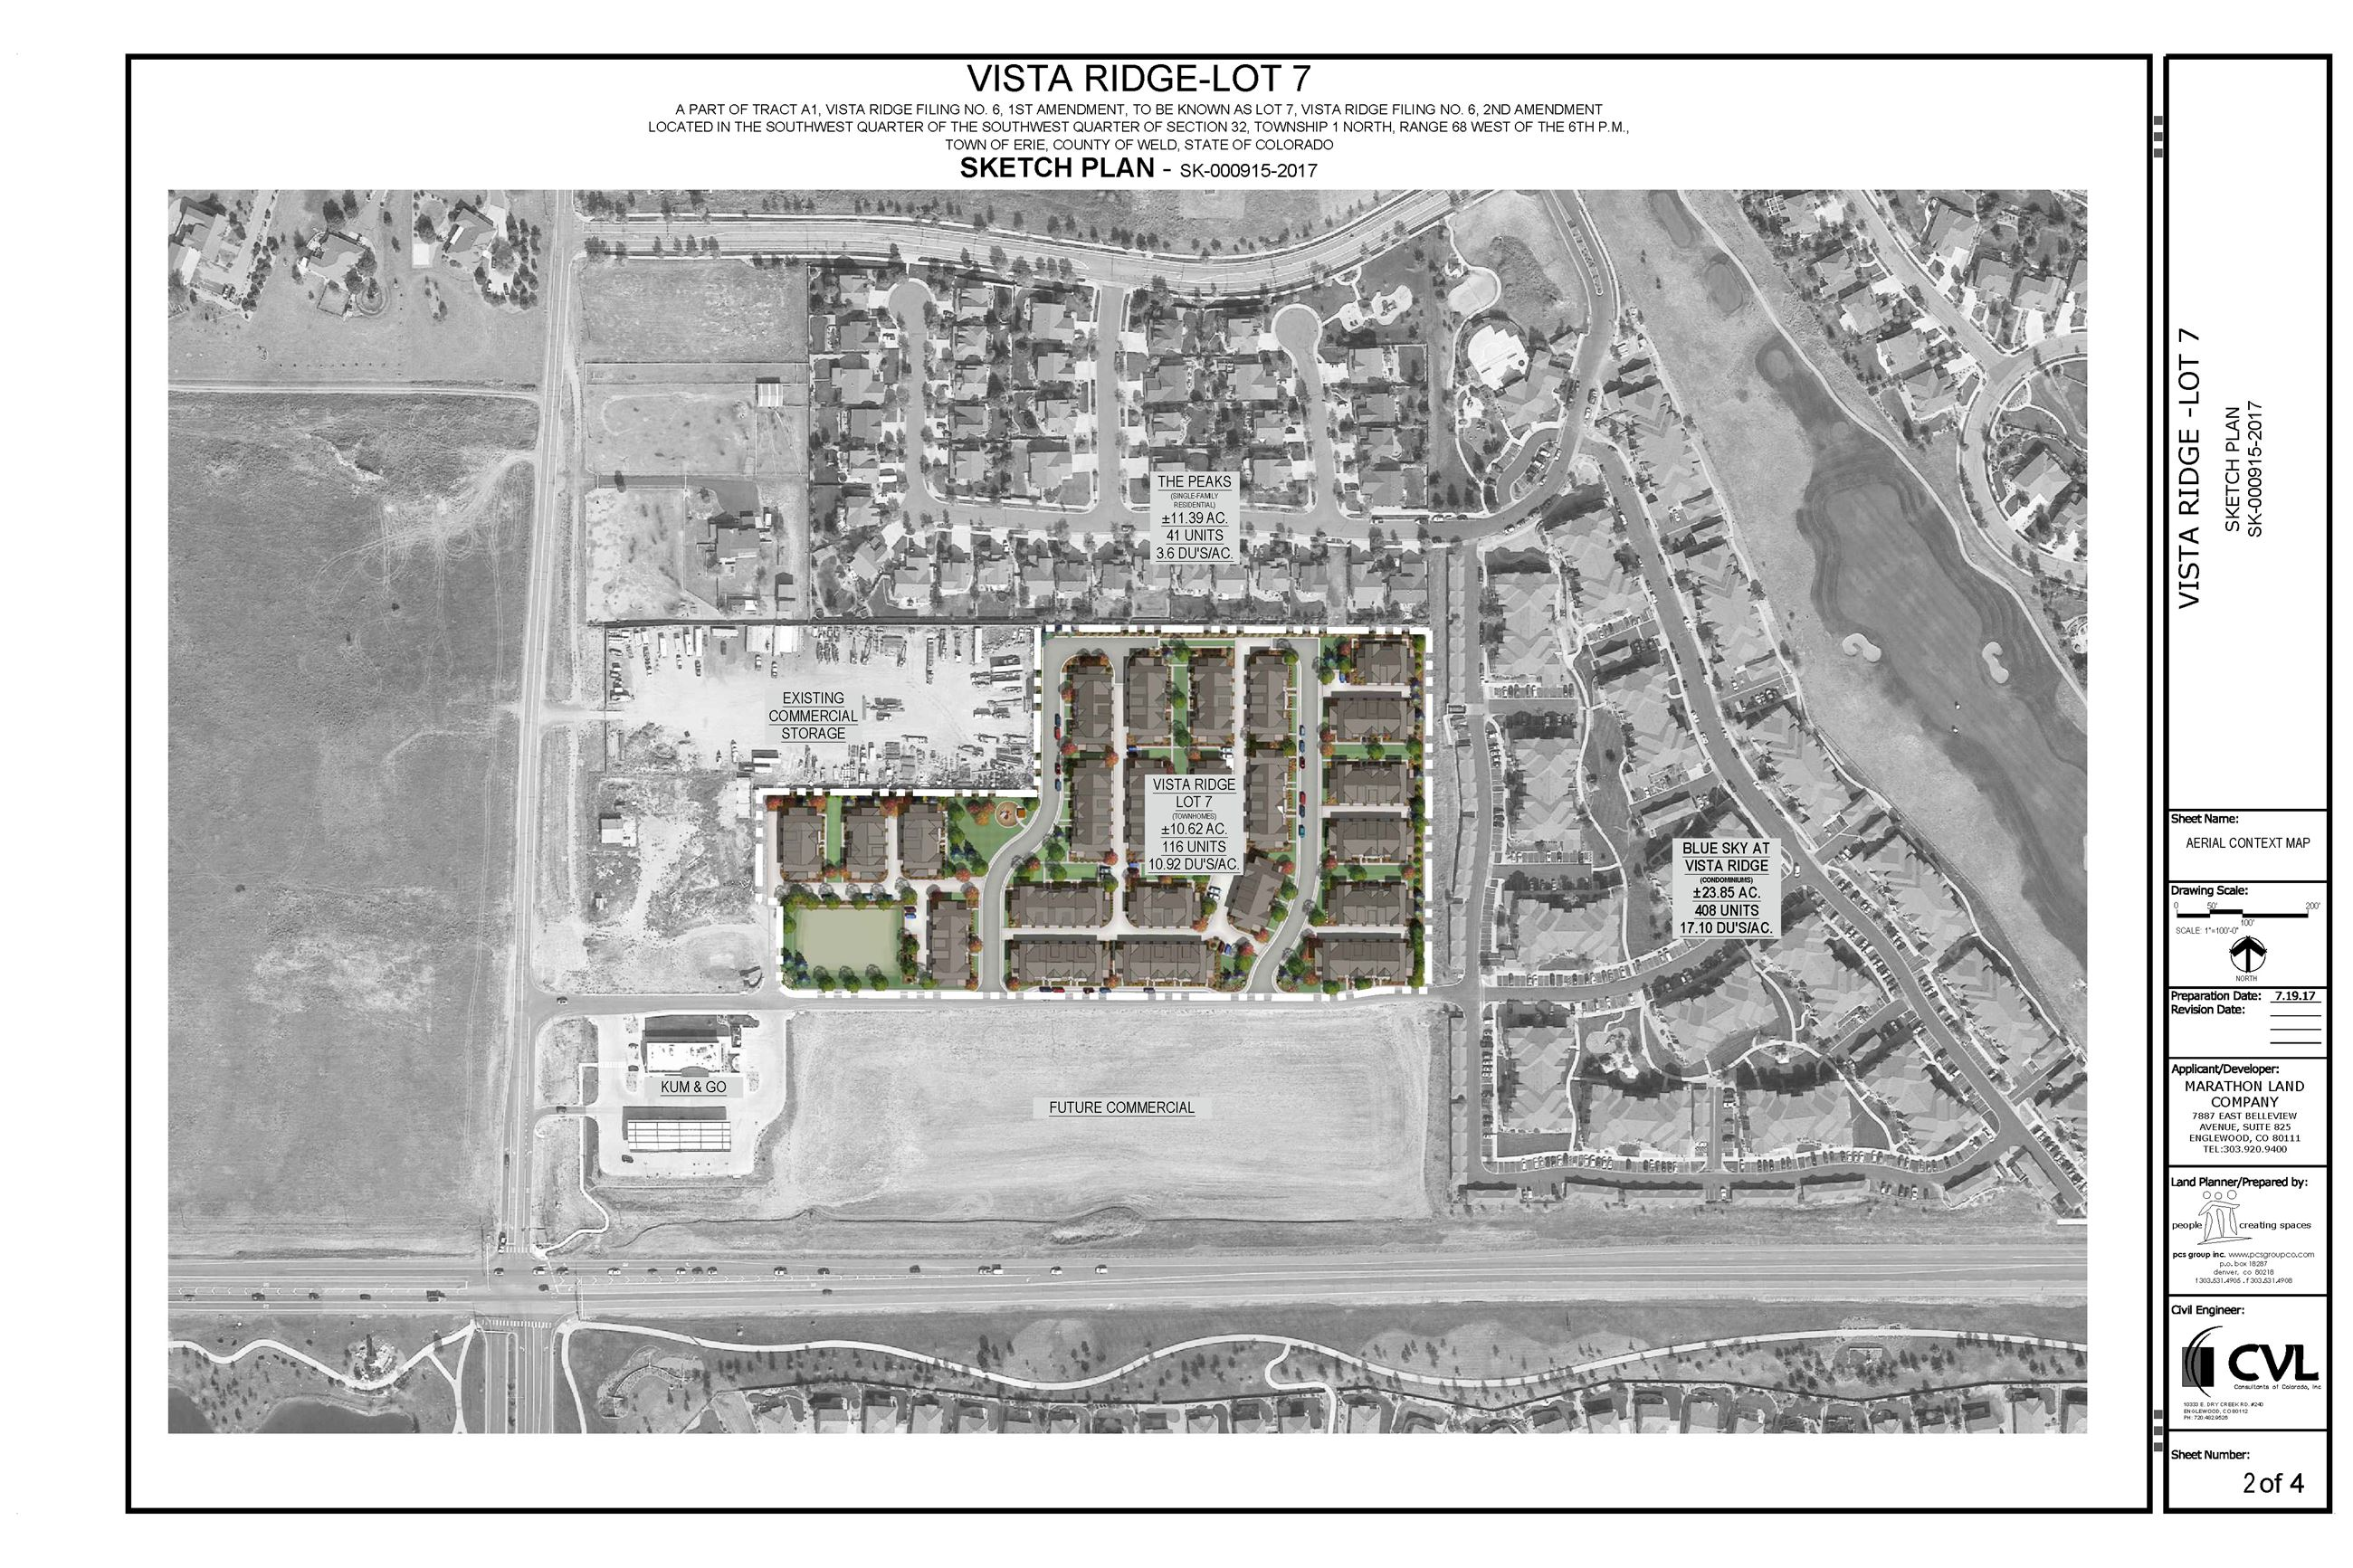 Vista Ridge Filing 6, Lot 7 subdivision - Sketch Plan - 10.25.2017